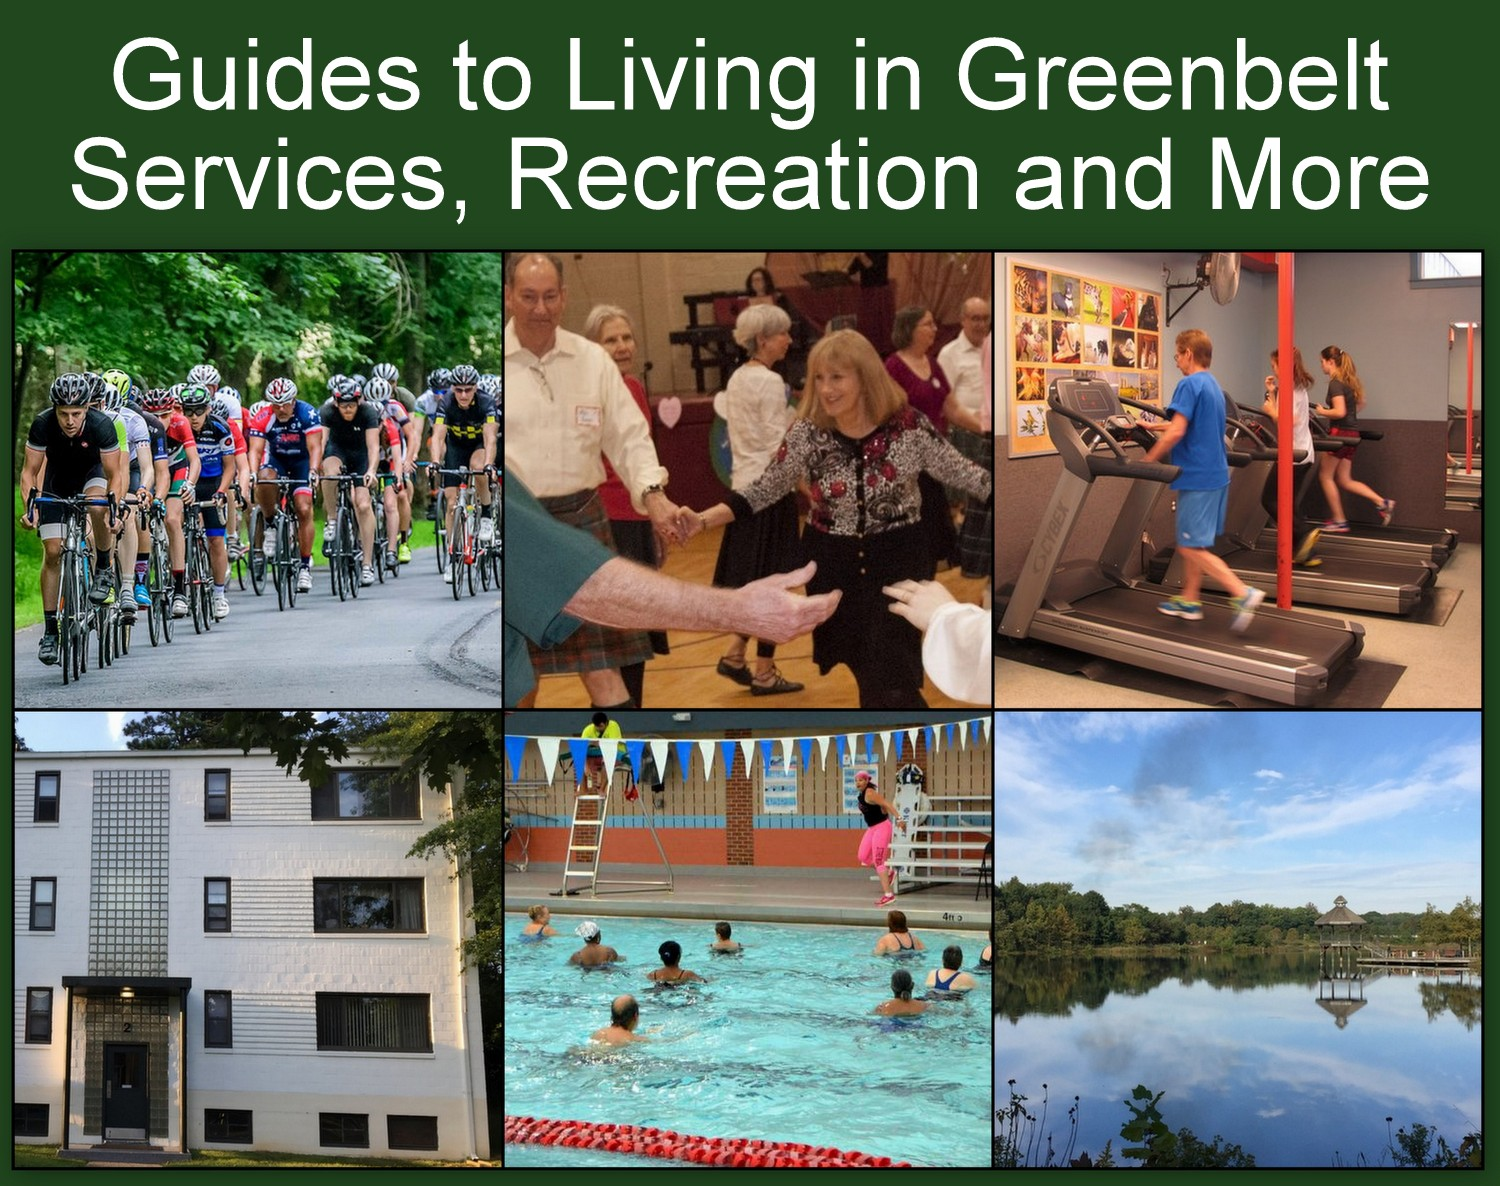 Greenbelt homes, natural resources, fitness center, dancers and more.